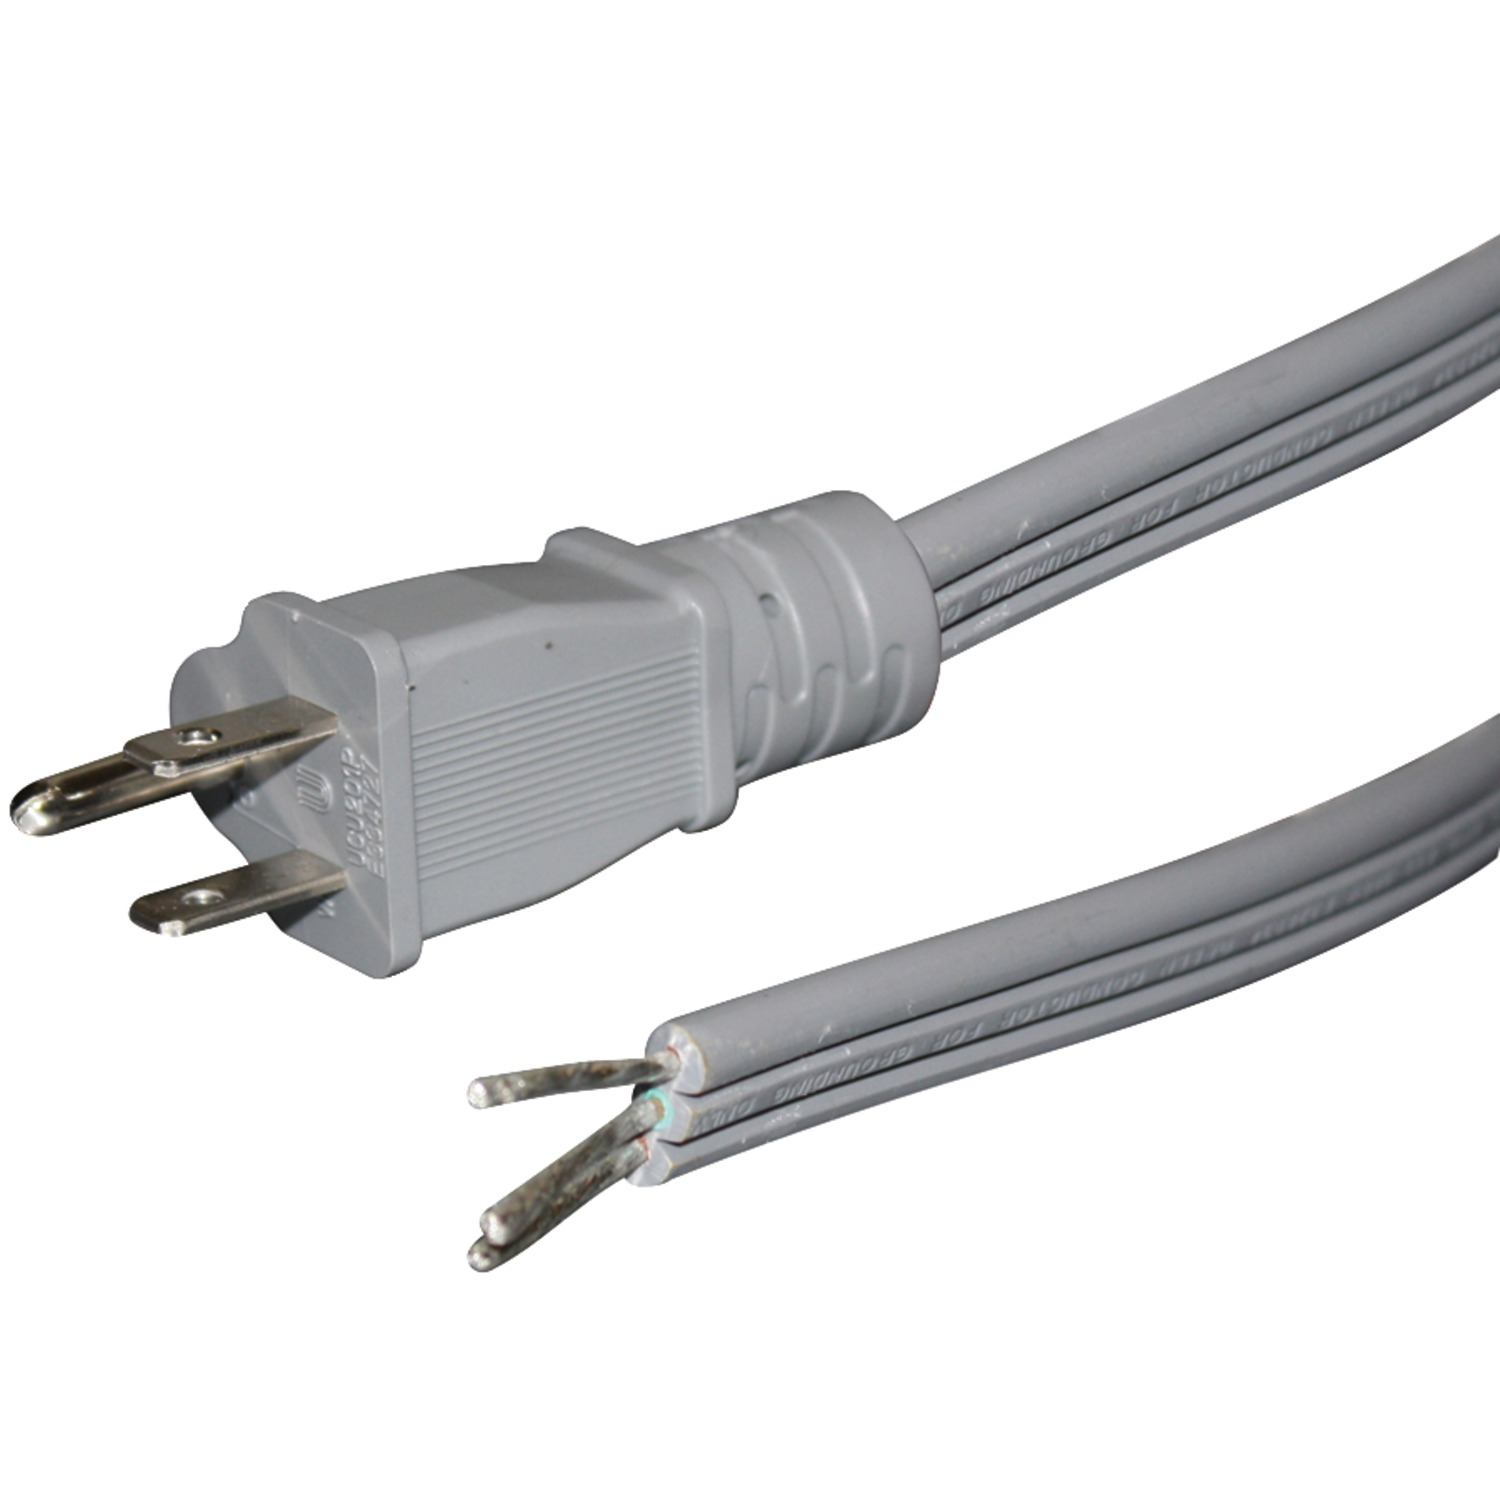 Flat Electrical Cable : Petra pet st flat appliance power cord ft